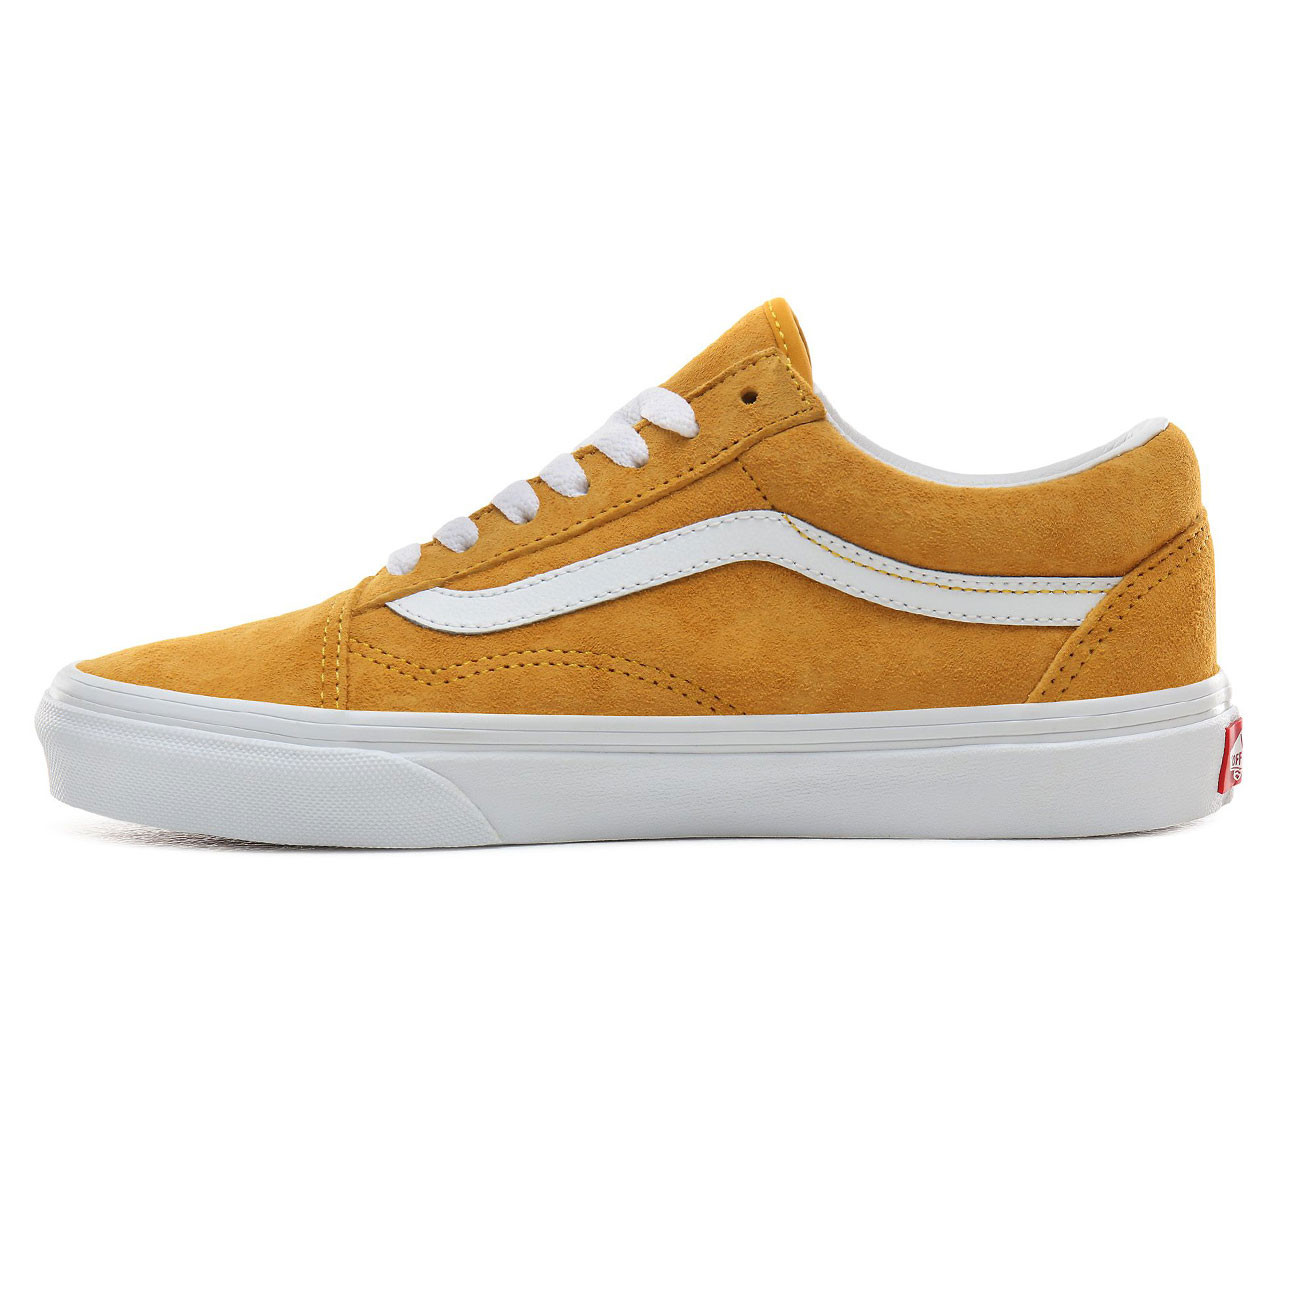 Skate shoes Vans Old Skool